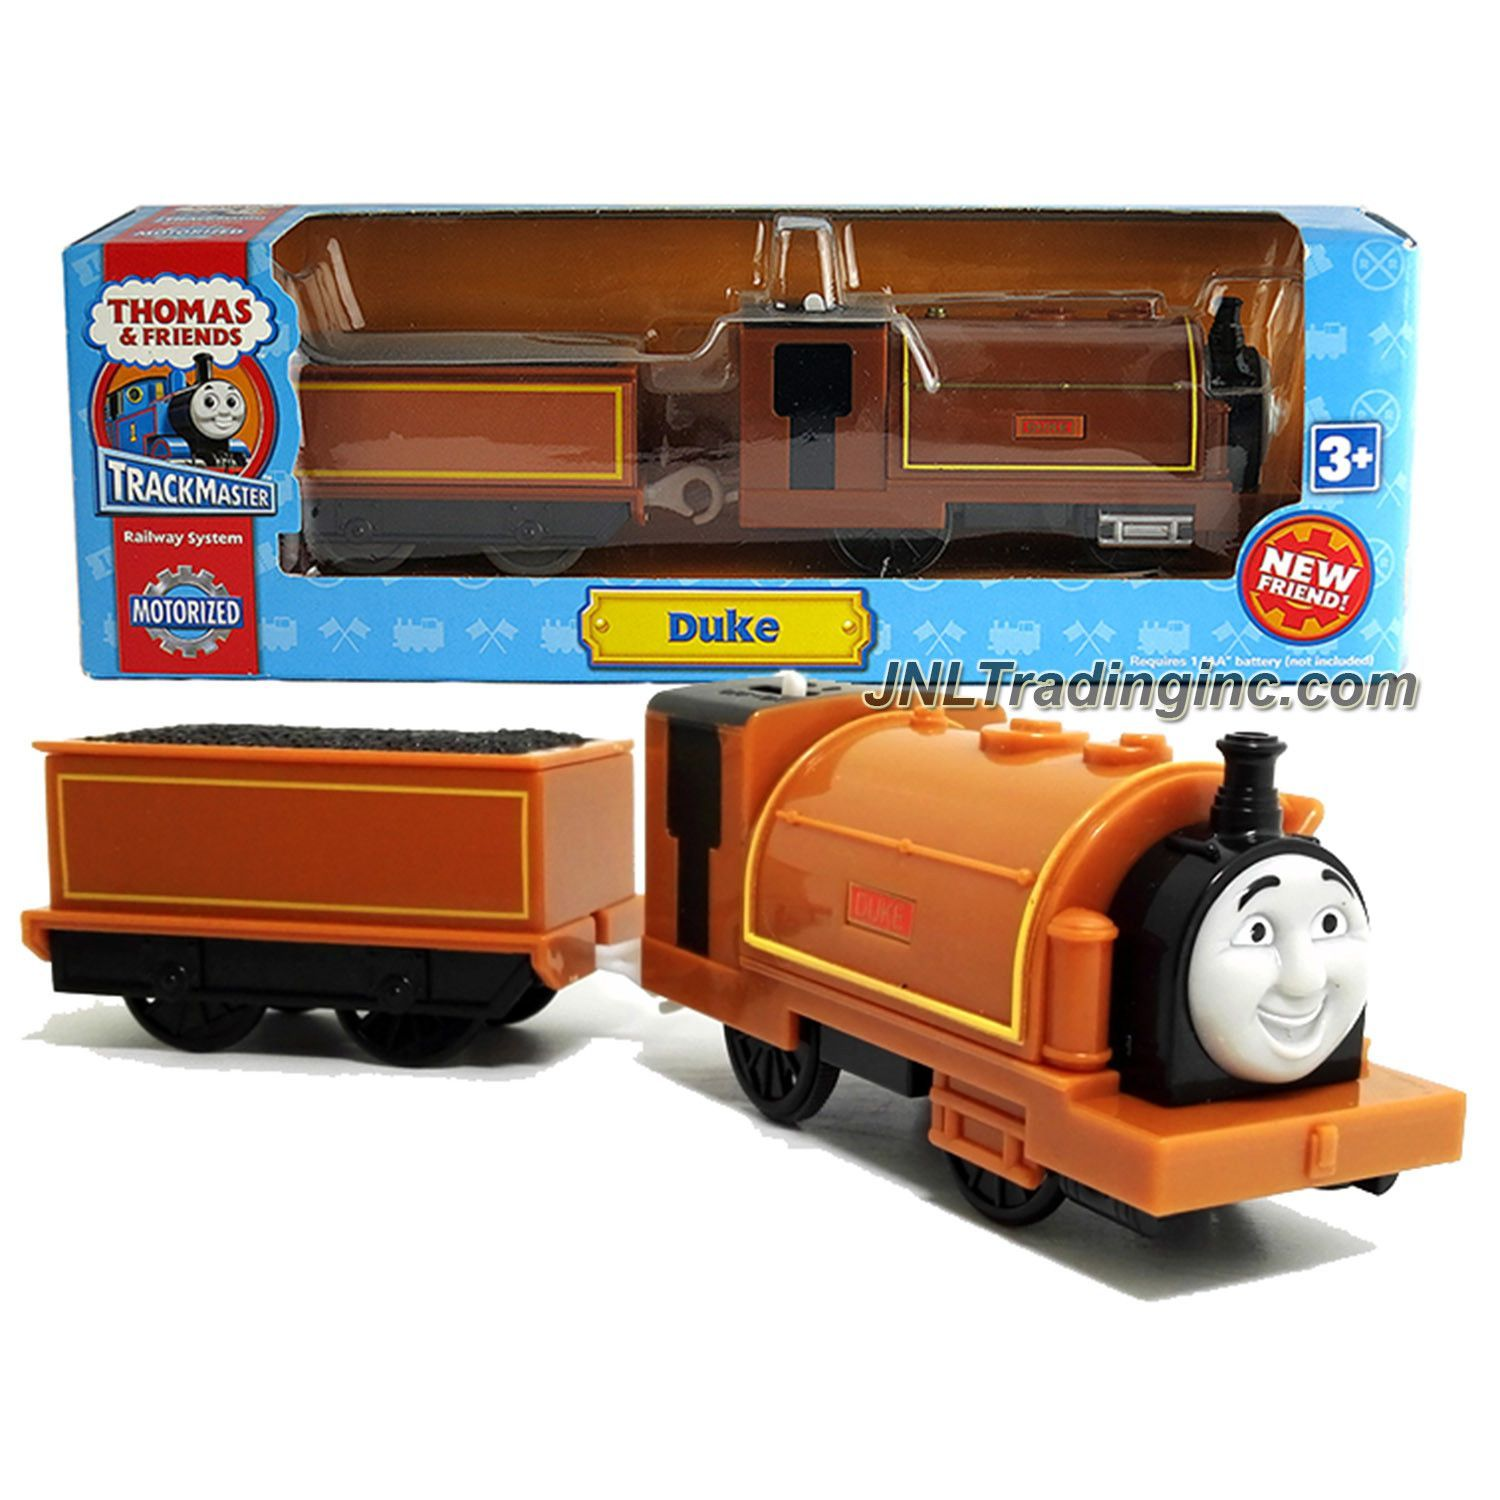 Hit toy thomas and friends trackmaster motorized railway 2 for Thomas friends trackmaster motorized railway